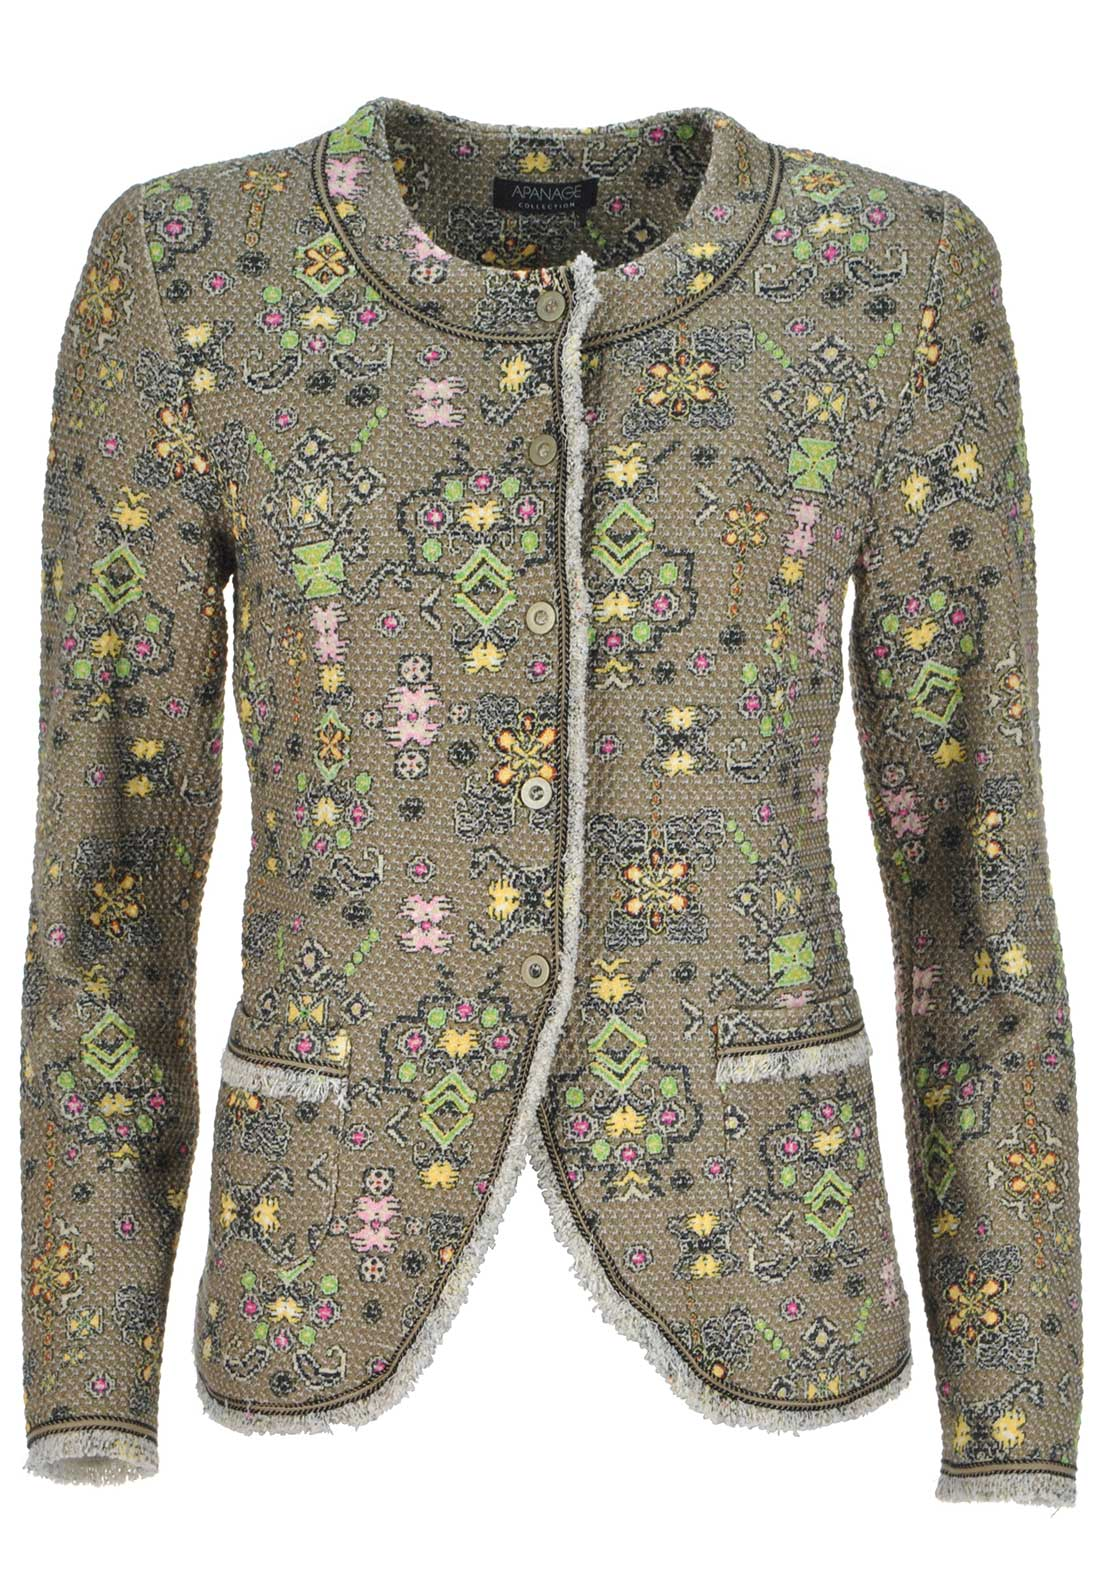 Apanage Printed Cotton Rich Jacket, Khaki Multi